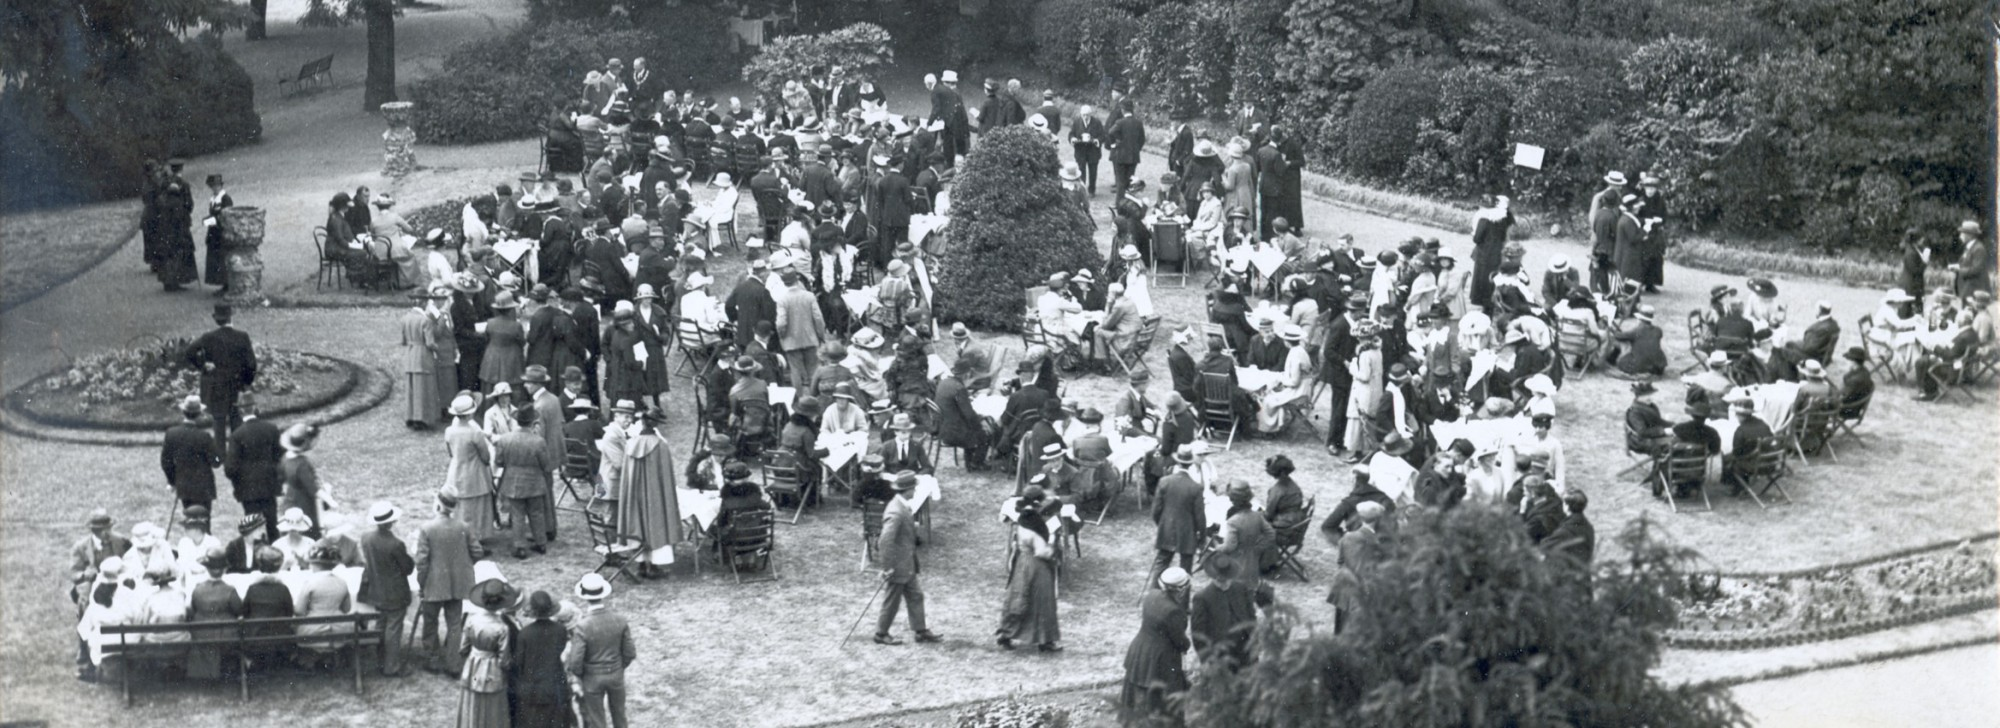 Reading Abbey octocentery celebrations in Forbury Gardens 18 june 1921, local studies collection